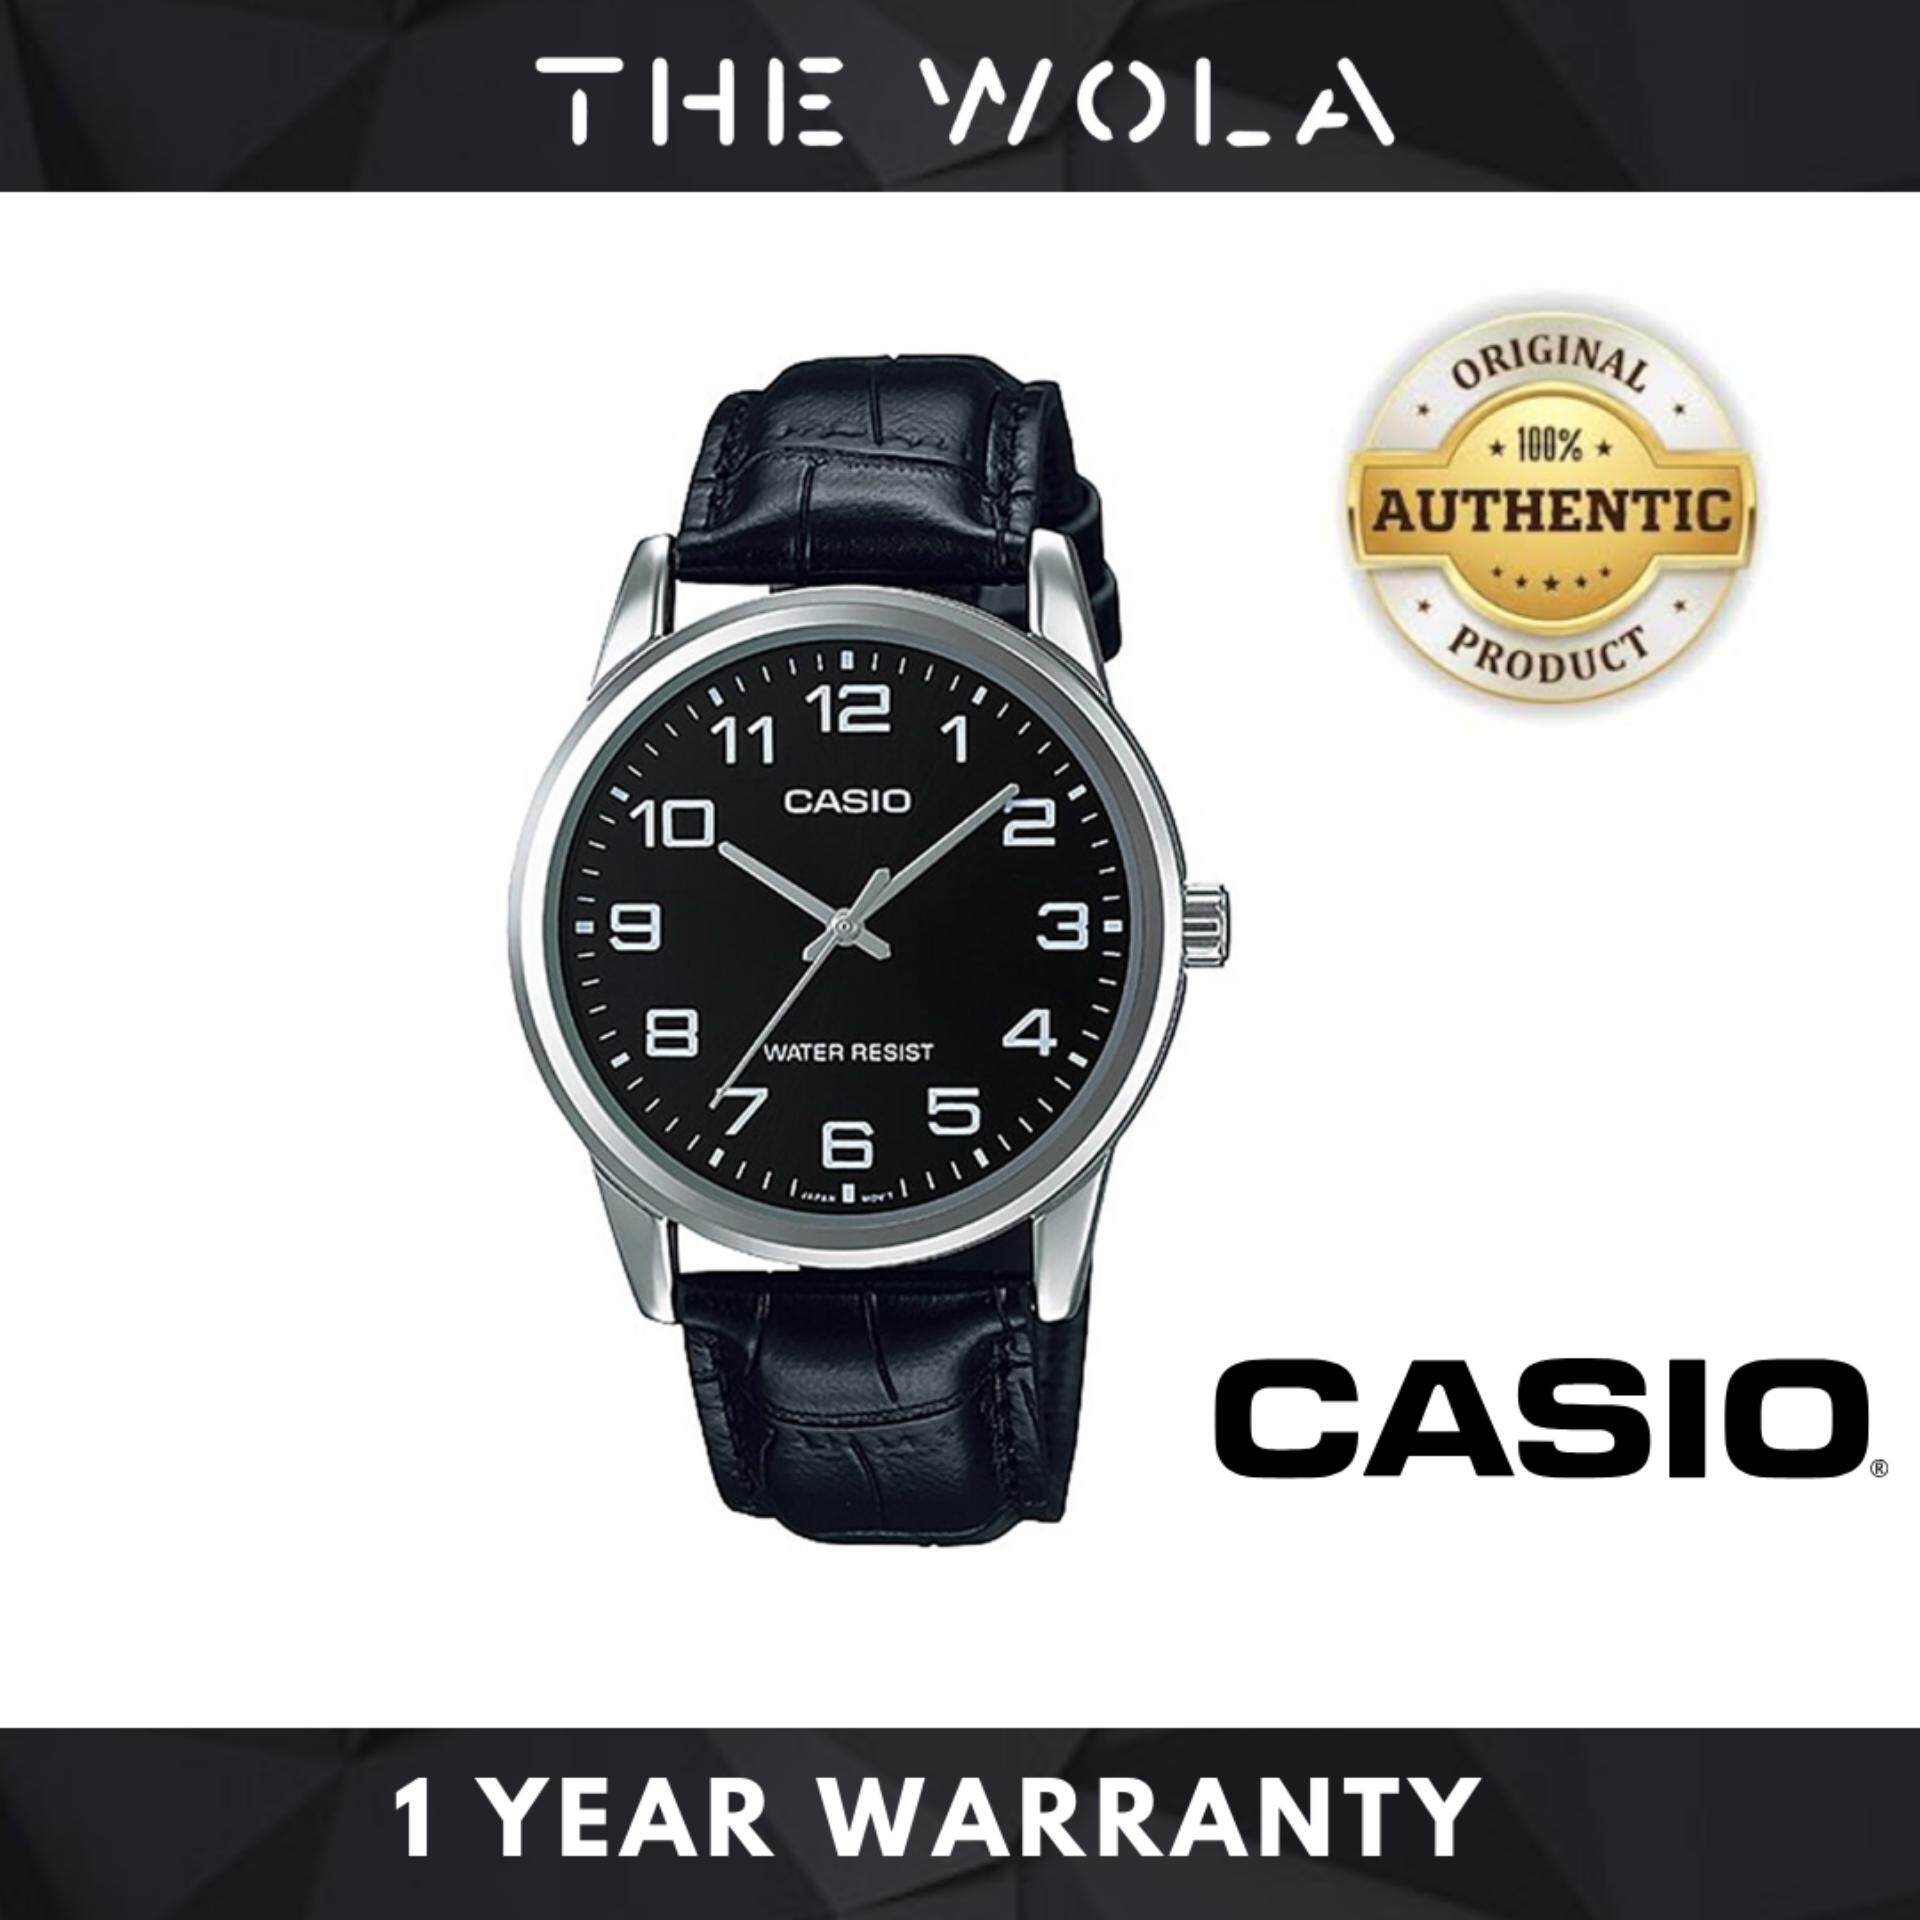 [100% Authentic] Casio Watch For Men Jam Tangan Lelaki MTP-V001L-1BUDF for man (1 Year Warranty) Malaysia